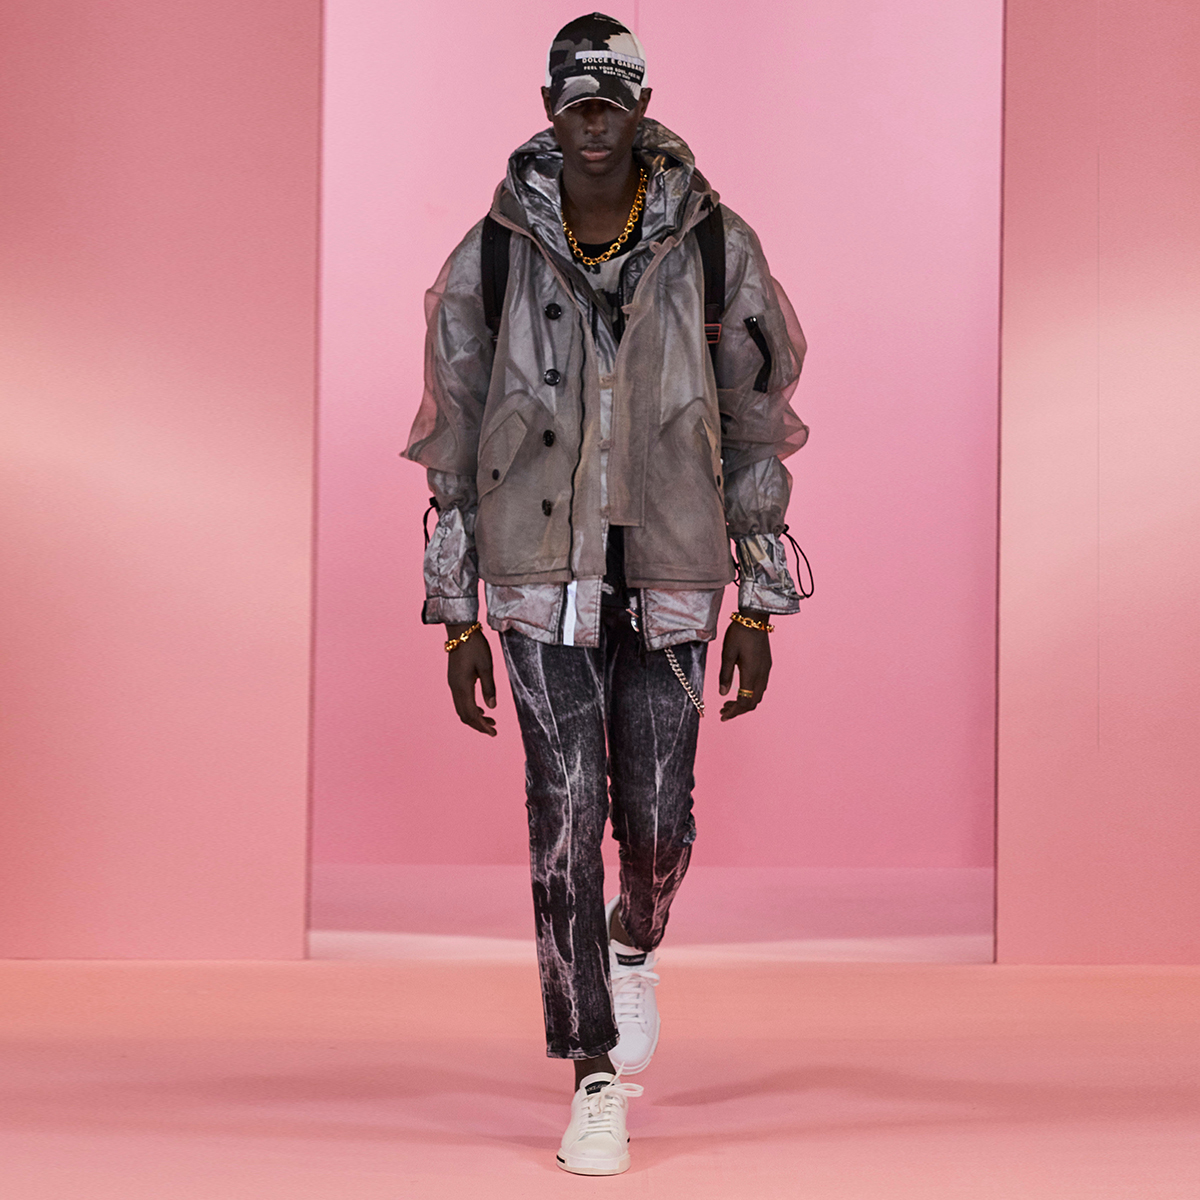 The #DGDigitalShowMan1 look features a nylon jacket with a hood and a patch embellishment, marbled jeans, white sneakers and a camouflage cap.  Shop the DNA look at the link:  #DolceGabbana